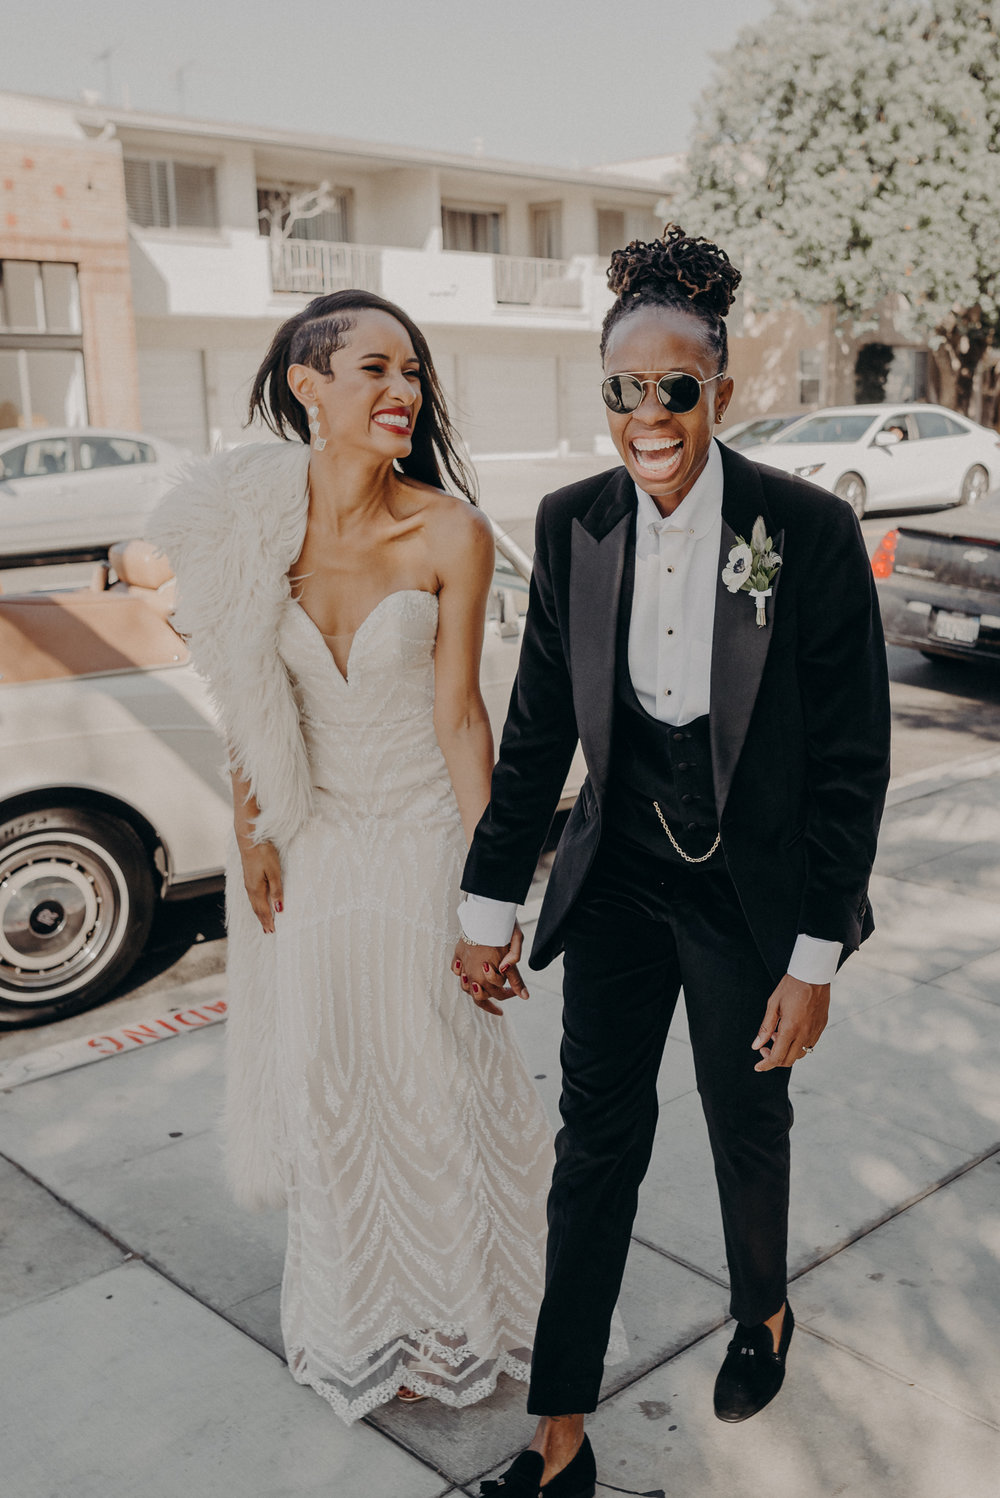 Wedding Photographer in Los Angeles - Ebell of Long Beach Wedding - LGBTQ weddings - lesbian wedding - IsaiahAndTaylor.com-057.jpg